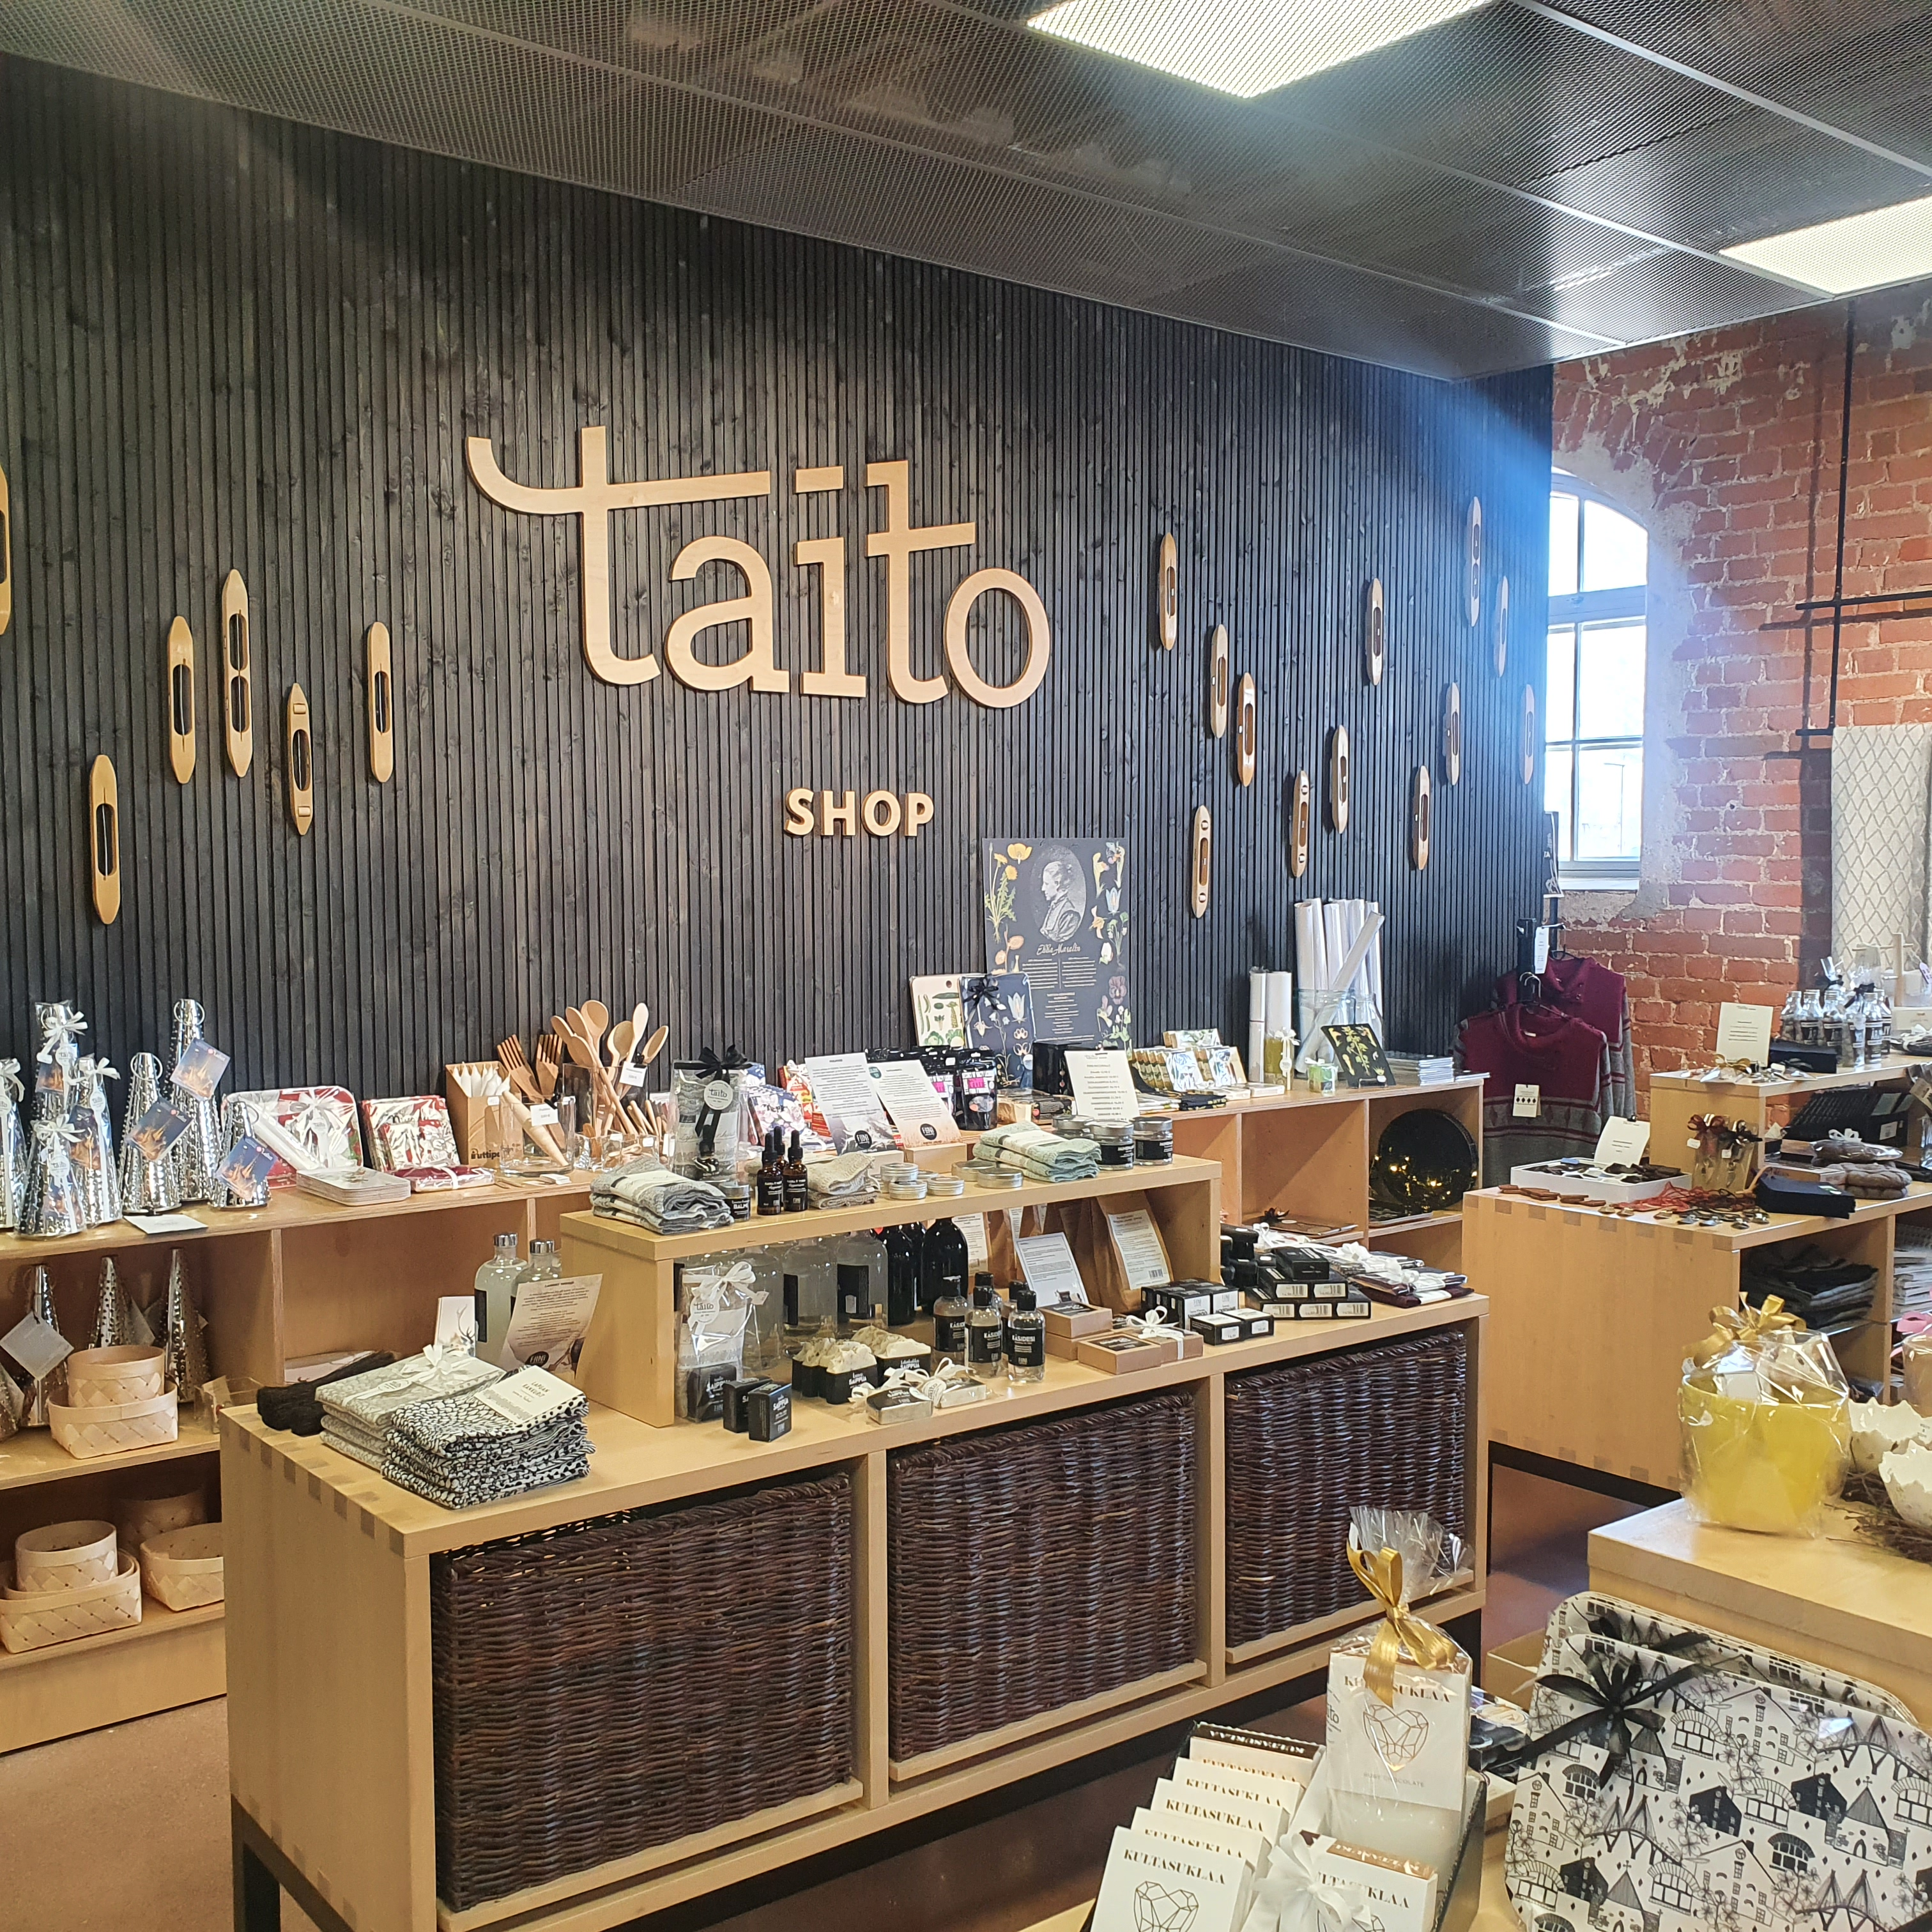 Taito Shop selling locally produced art and crafts